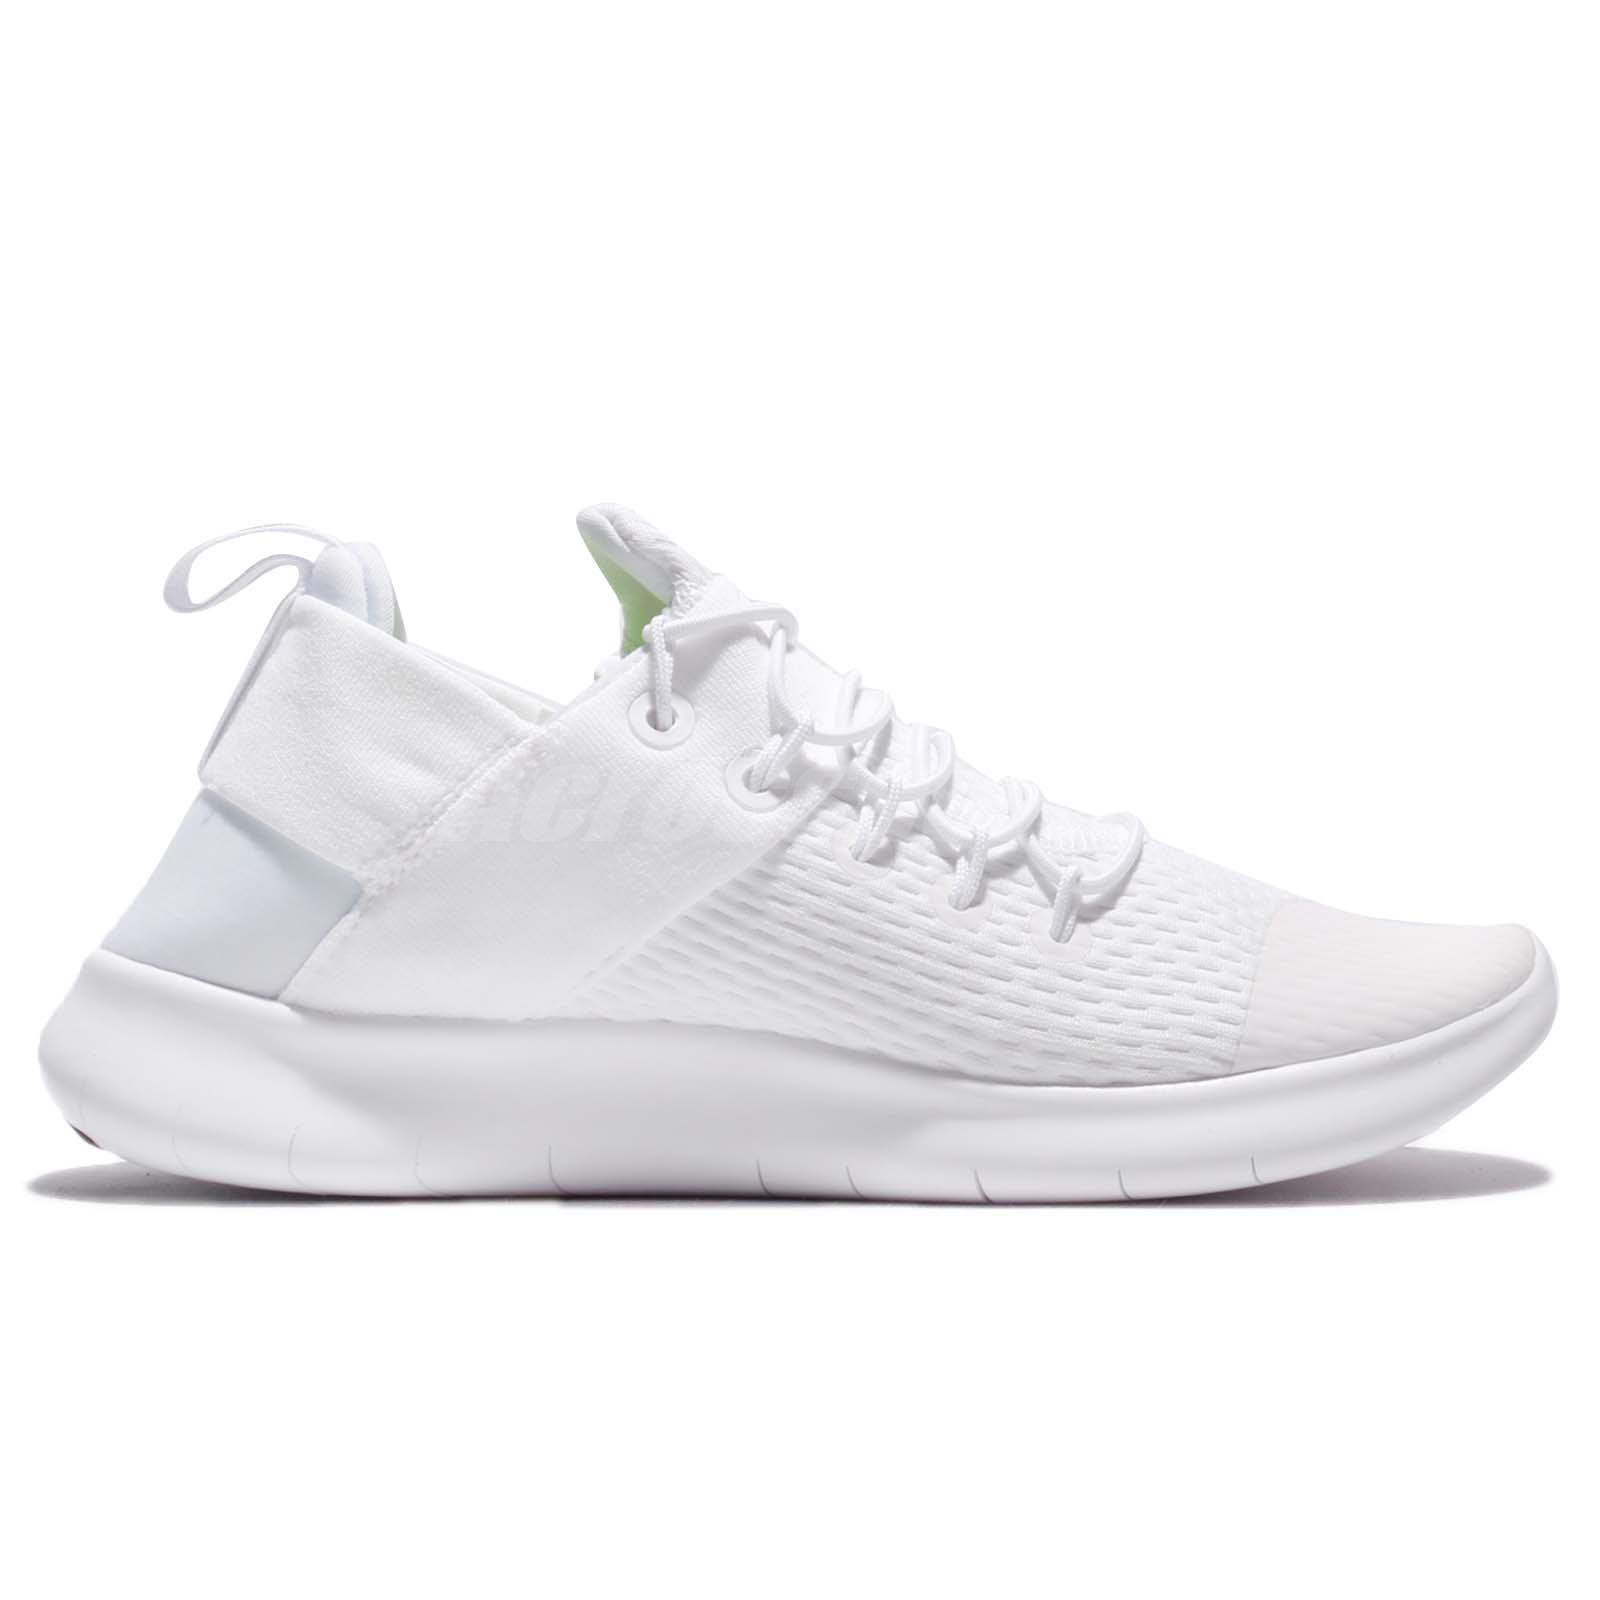 445cd93706004 Wmns Nike Free RN CMTR 2017 Triple White Women Running Shoes ...